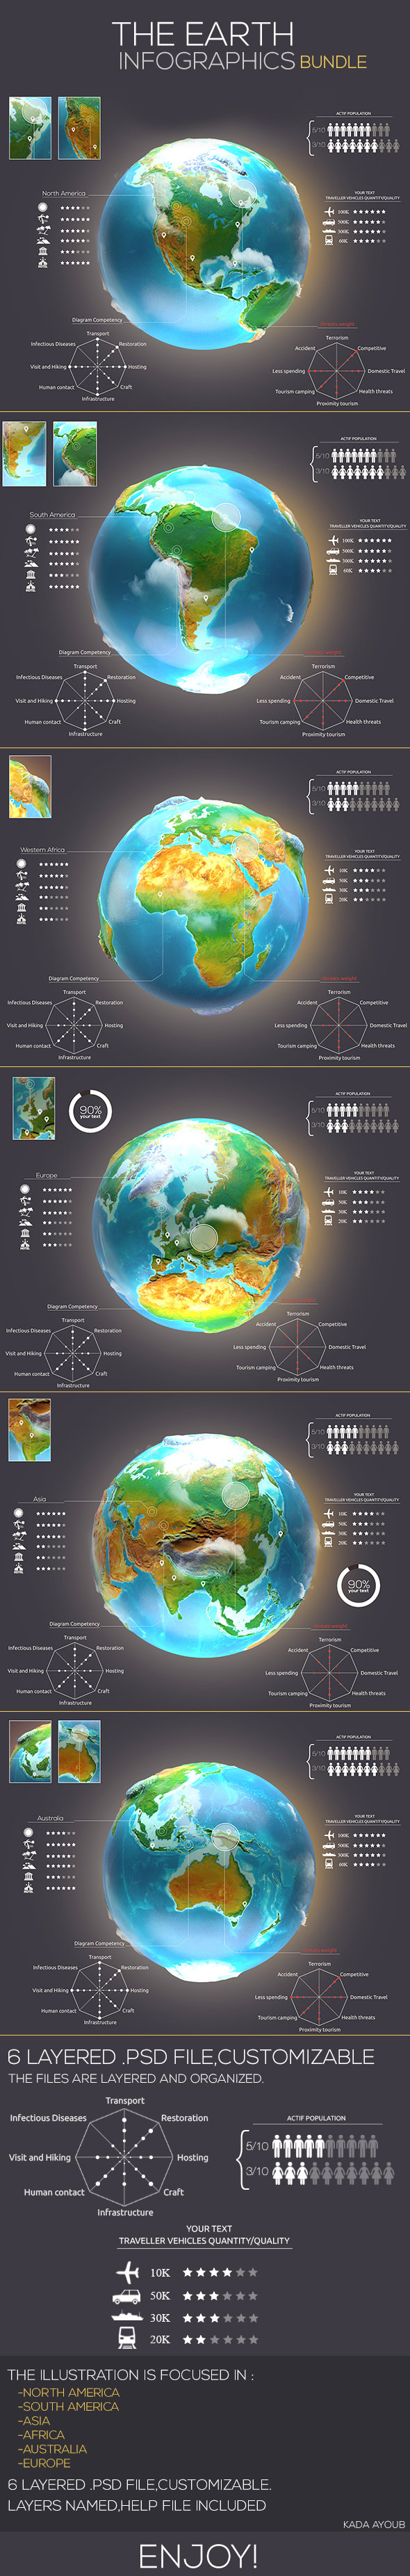 Earth Travel Infographic Download